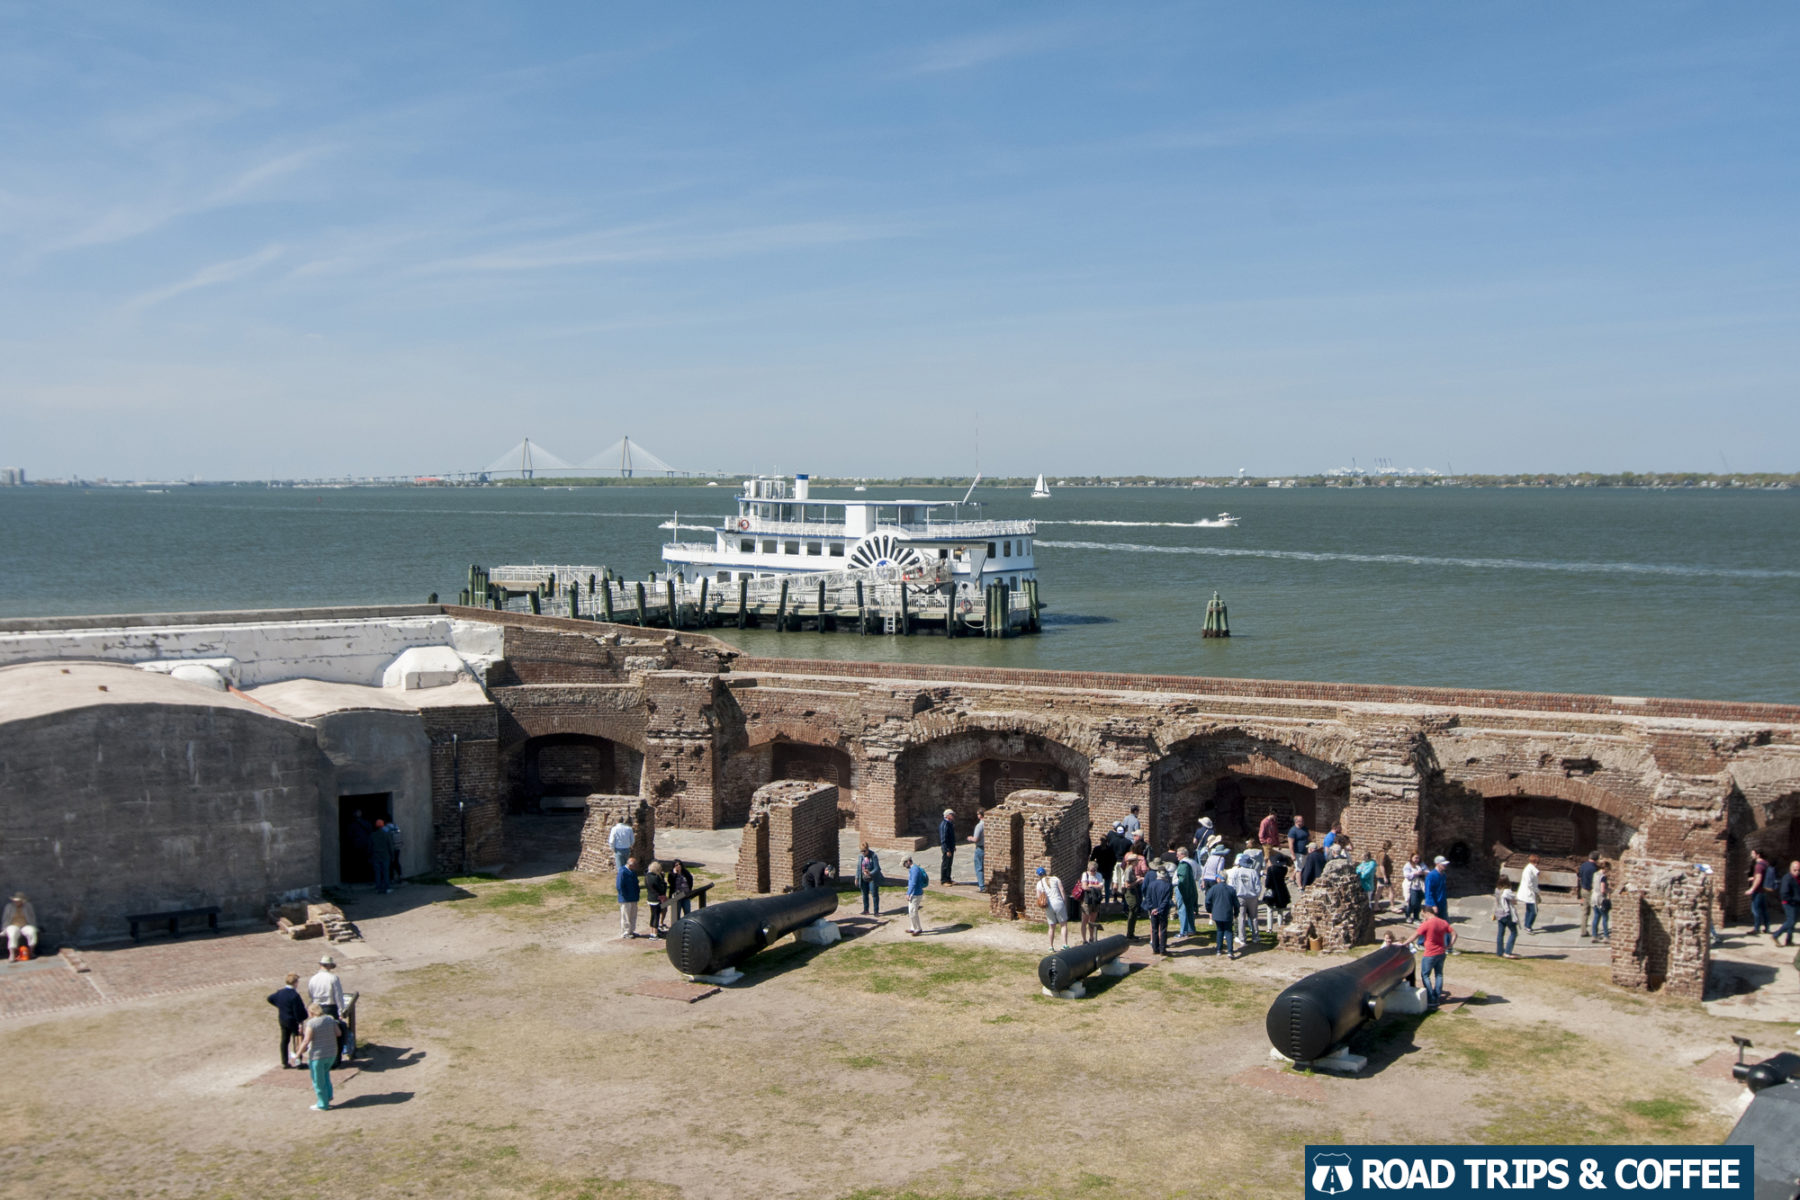 A view across Fort Sumter, a tour boat, and Charleston Harbor at the Fort Sumter & Fort Moultrie National Historical Park in Charleston, South Carolina